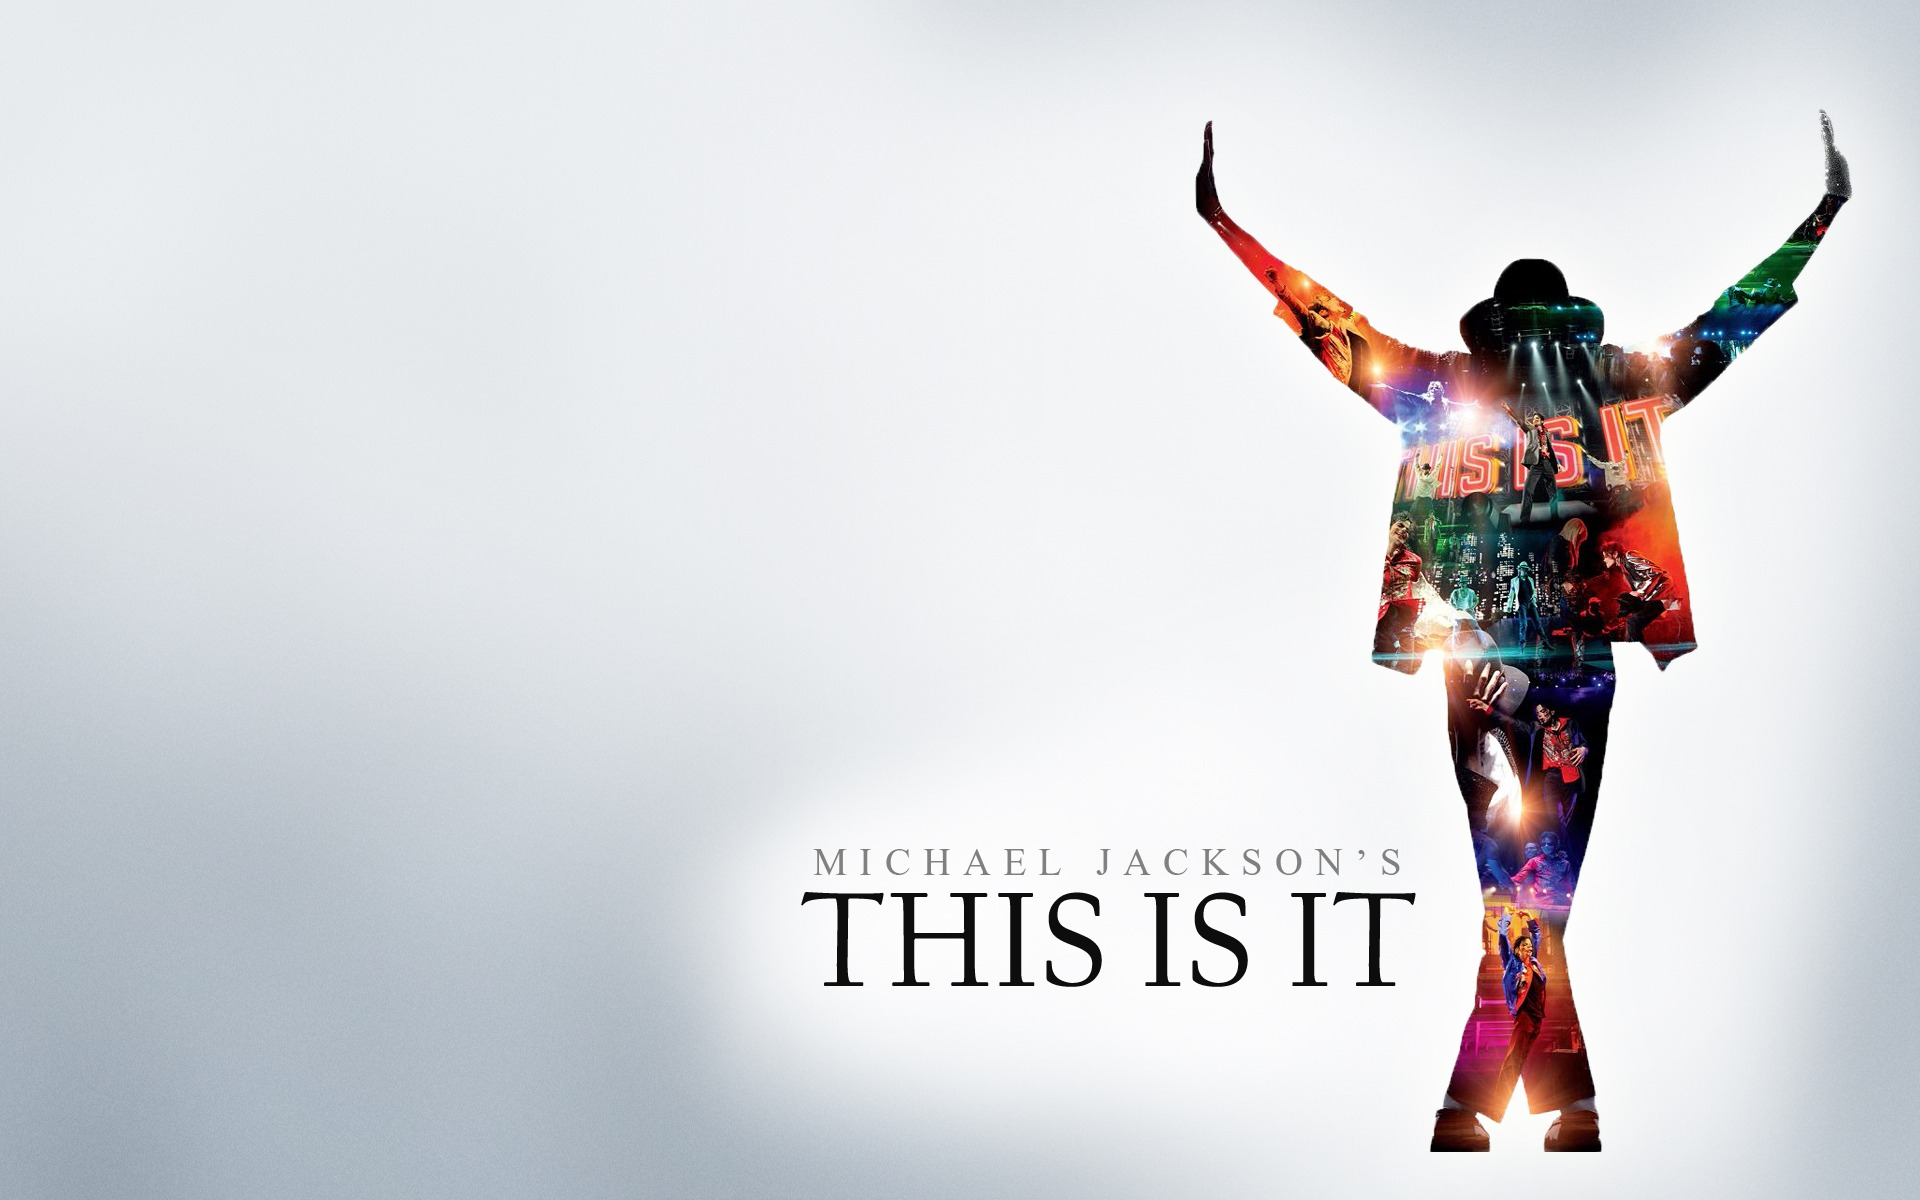 This Is It Wallpaper Michael Jackson Male celebrities Wallpapers